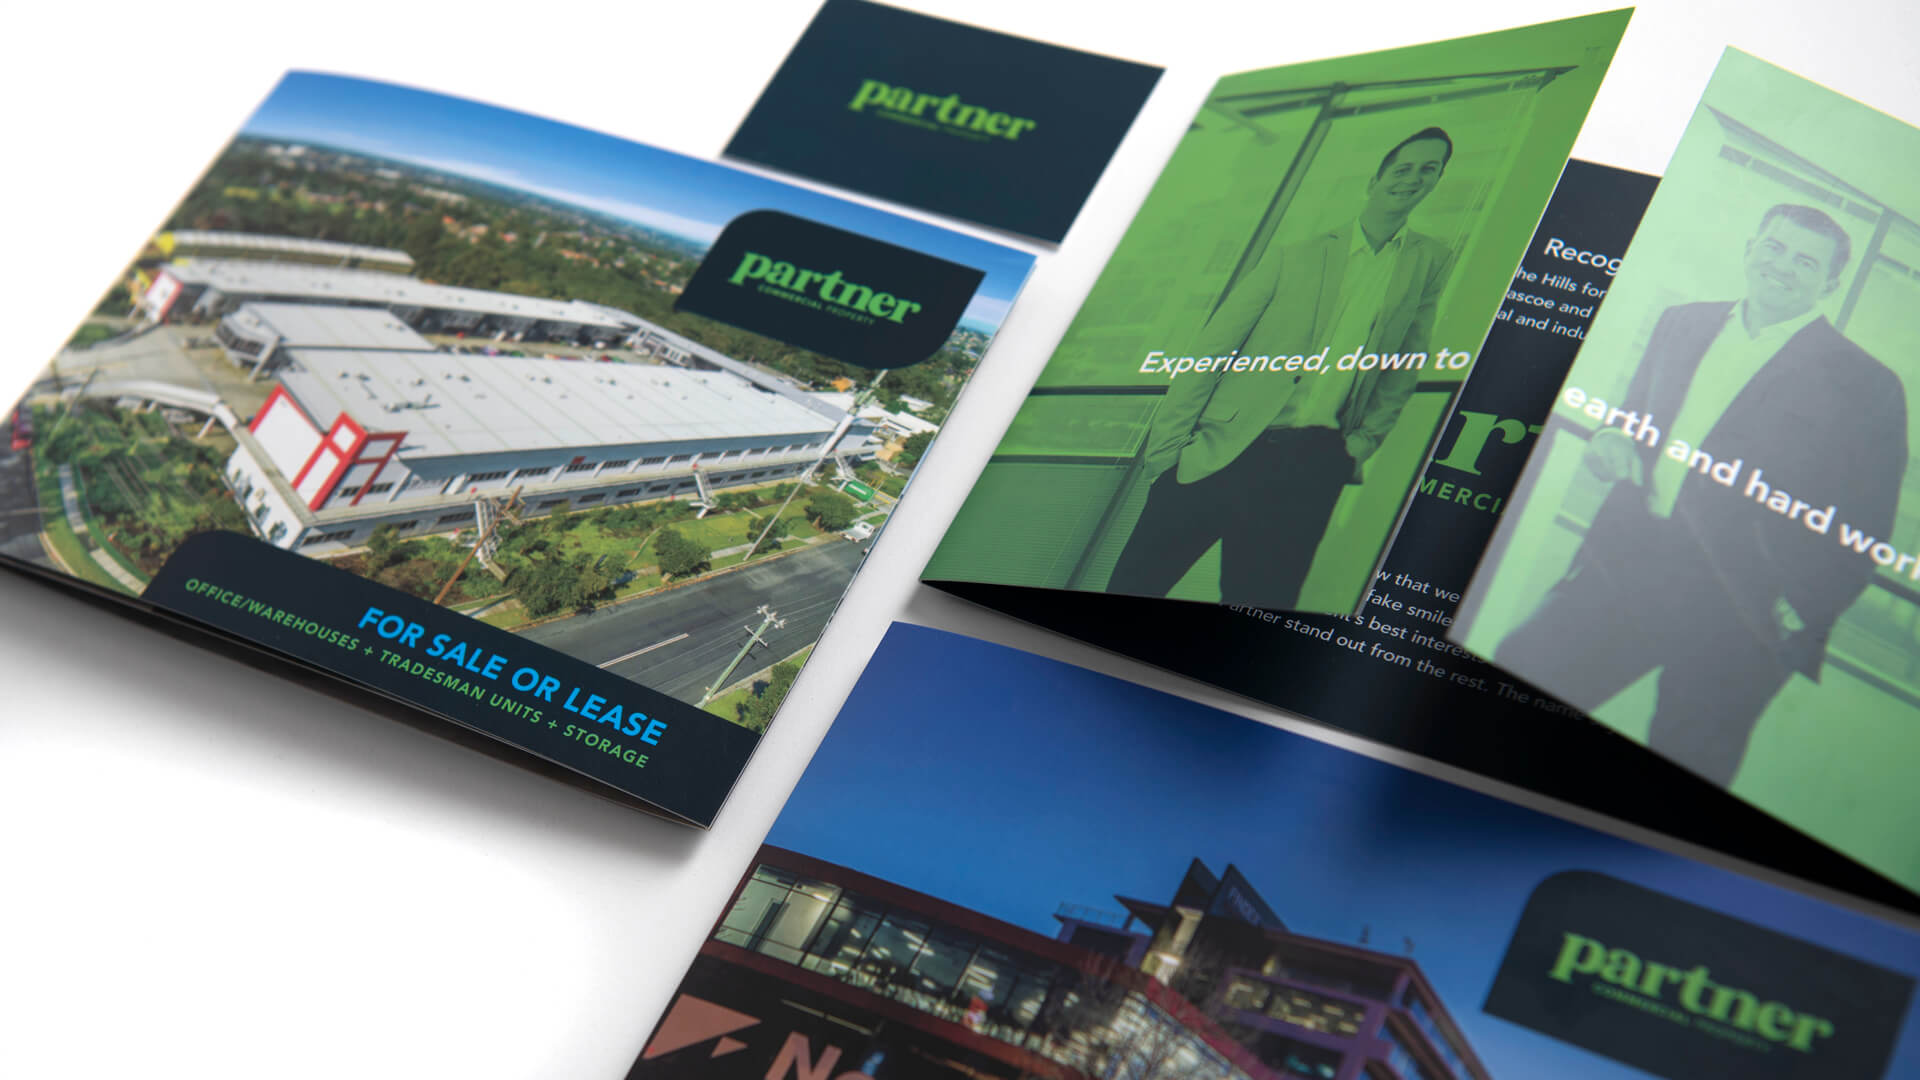 Marketing and Design Agency - Poloko - Northern Beaches - Partner Commercial